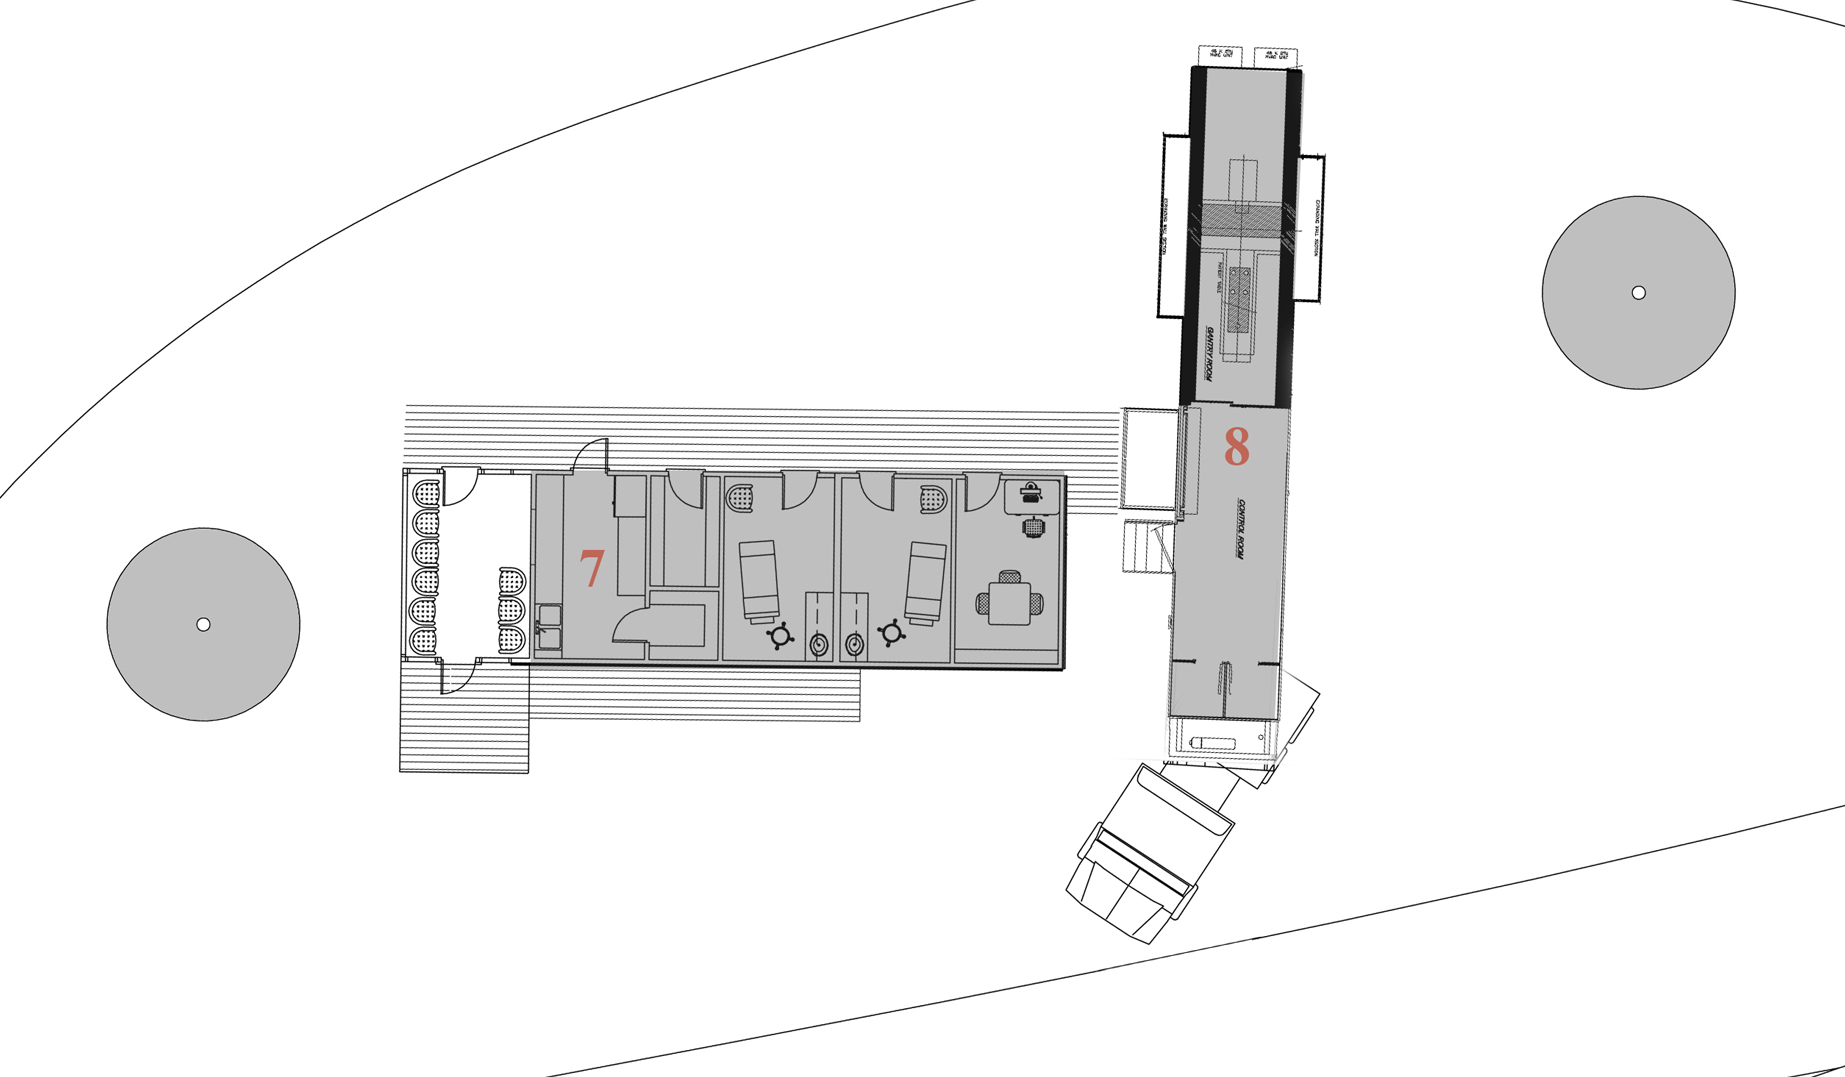 thesis- rural clinic plan